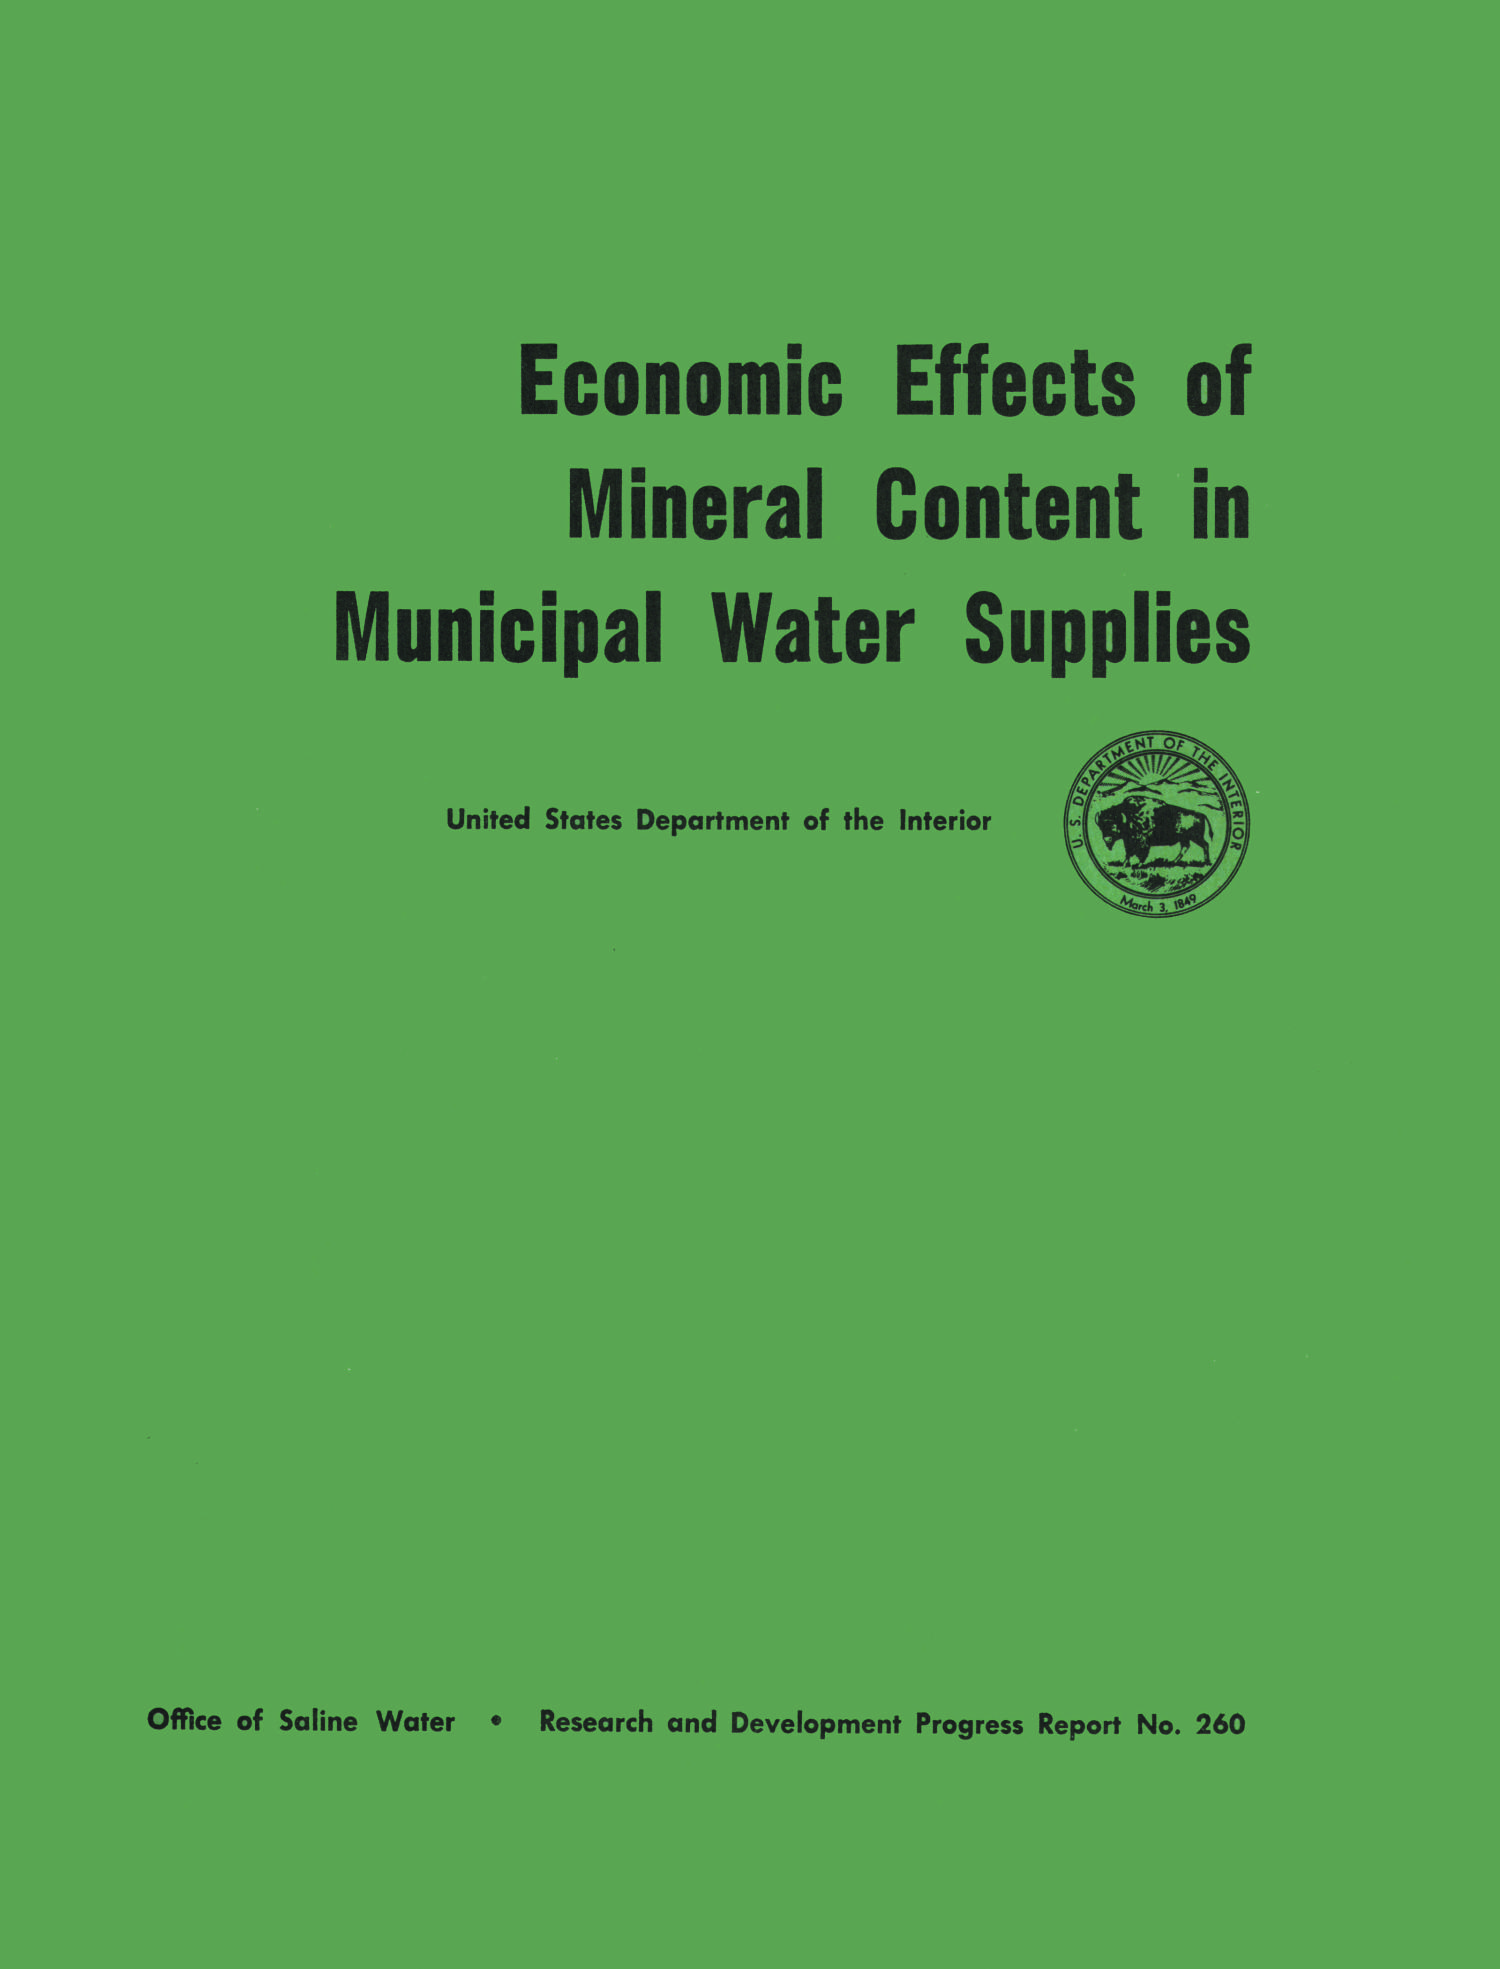 Economic Effects of Mineral Content in Municipal Water Supplies                                                                                                      I